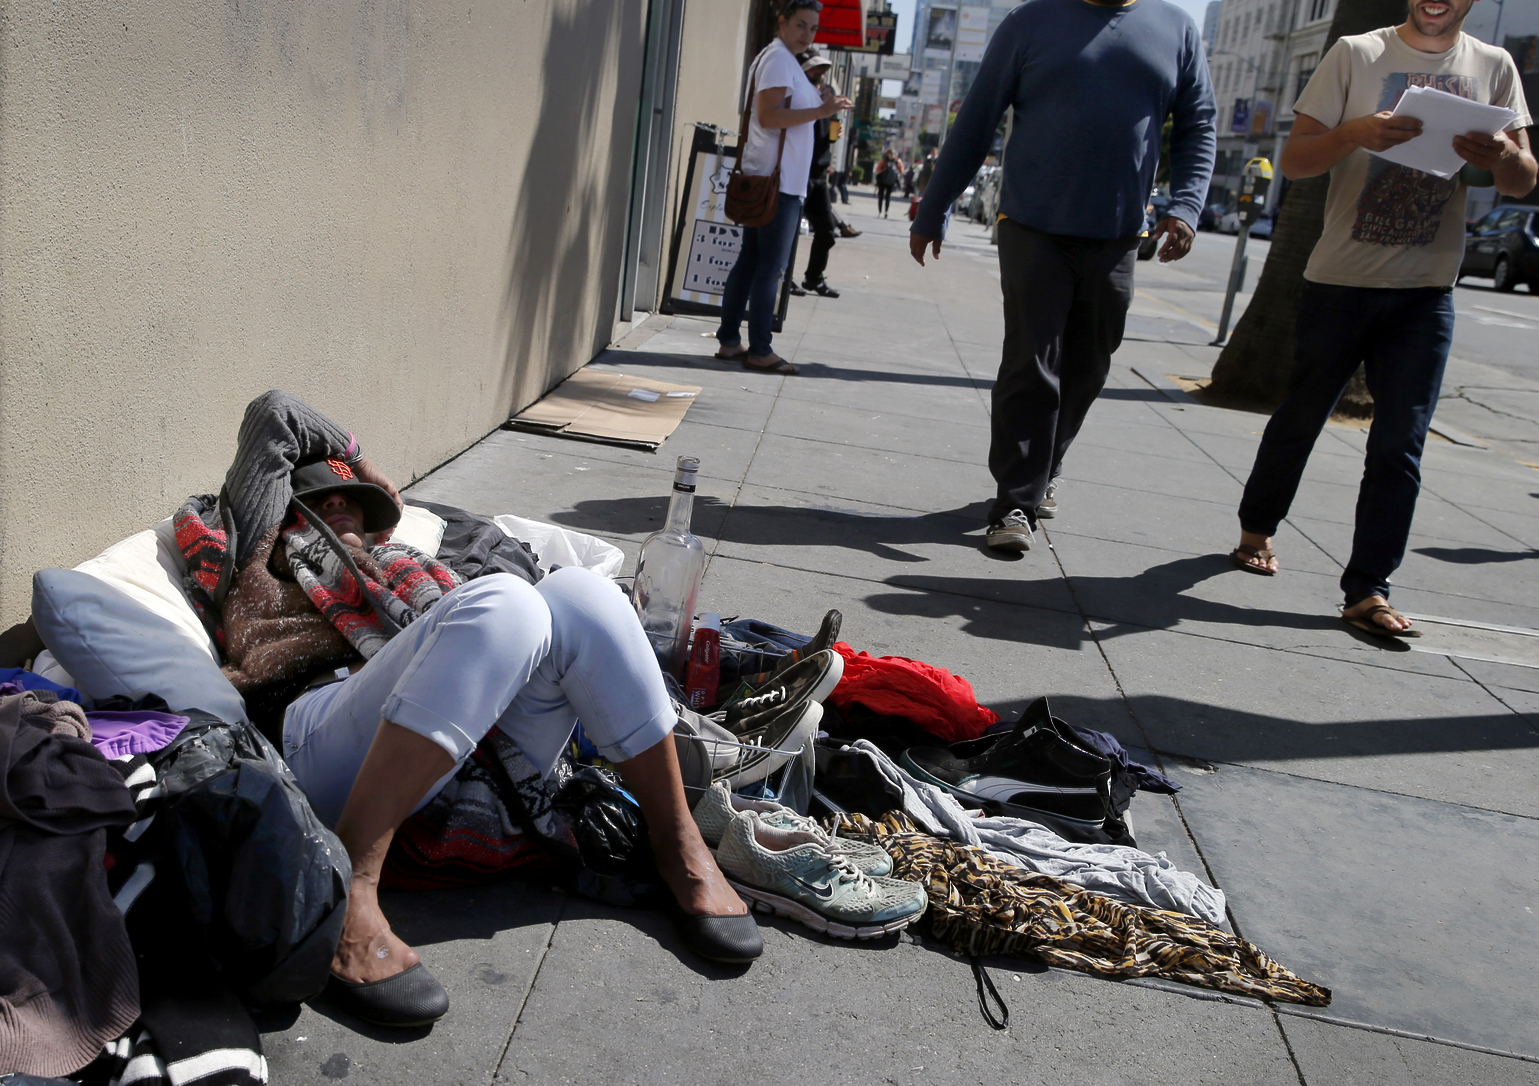 Over 25 Percent of Homeless San Franciscans Are LGBT